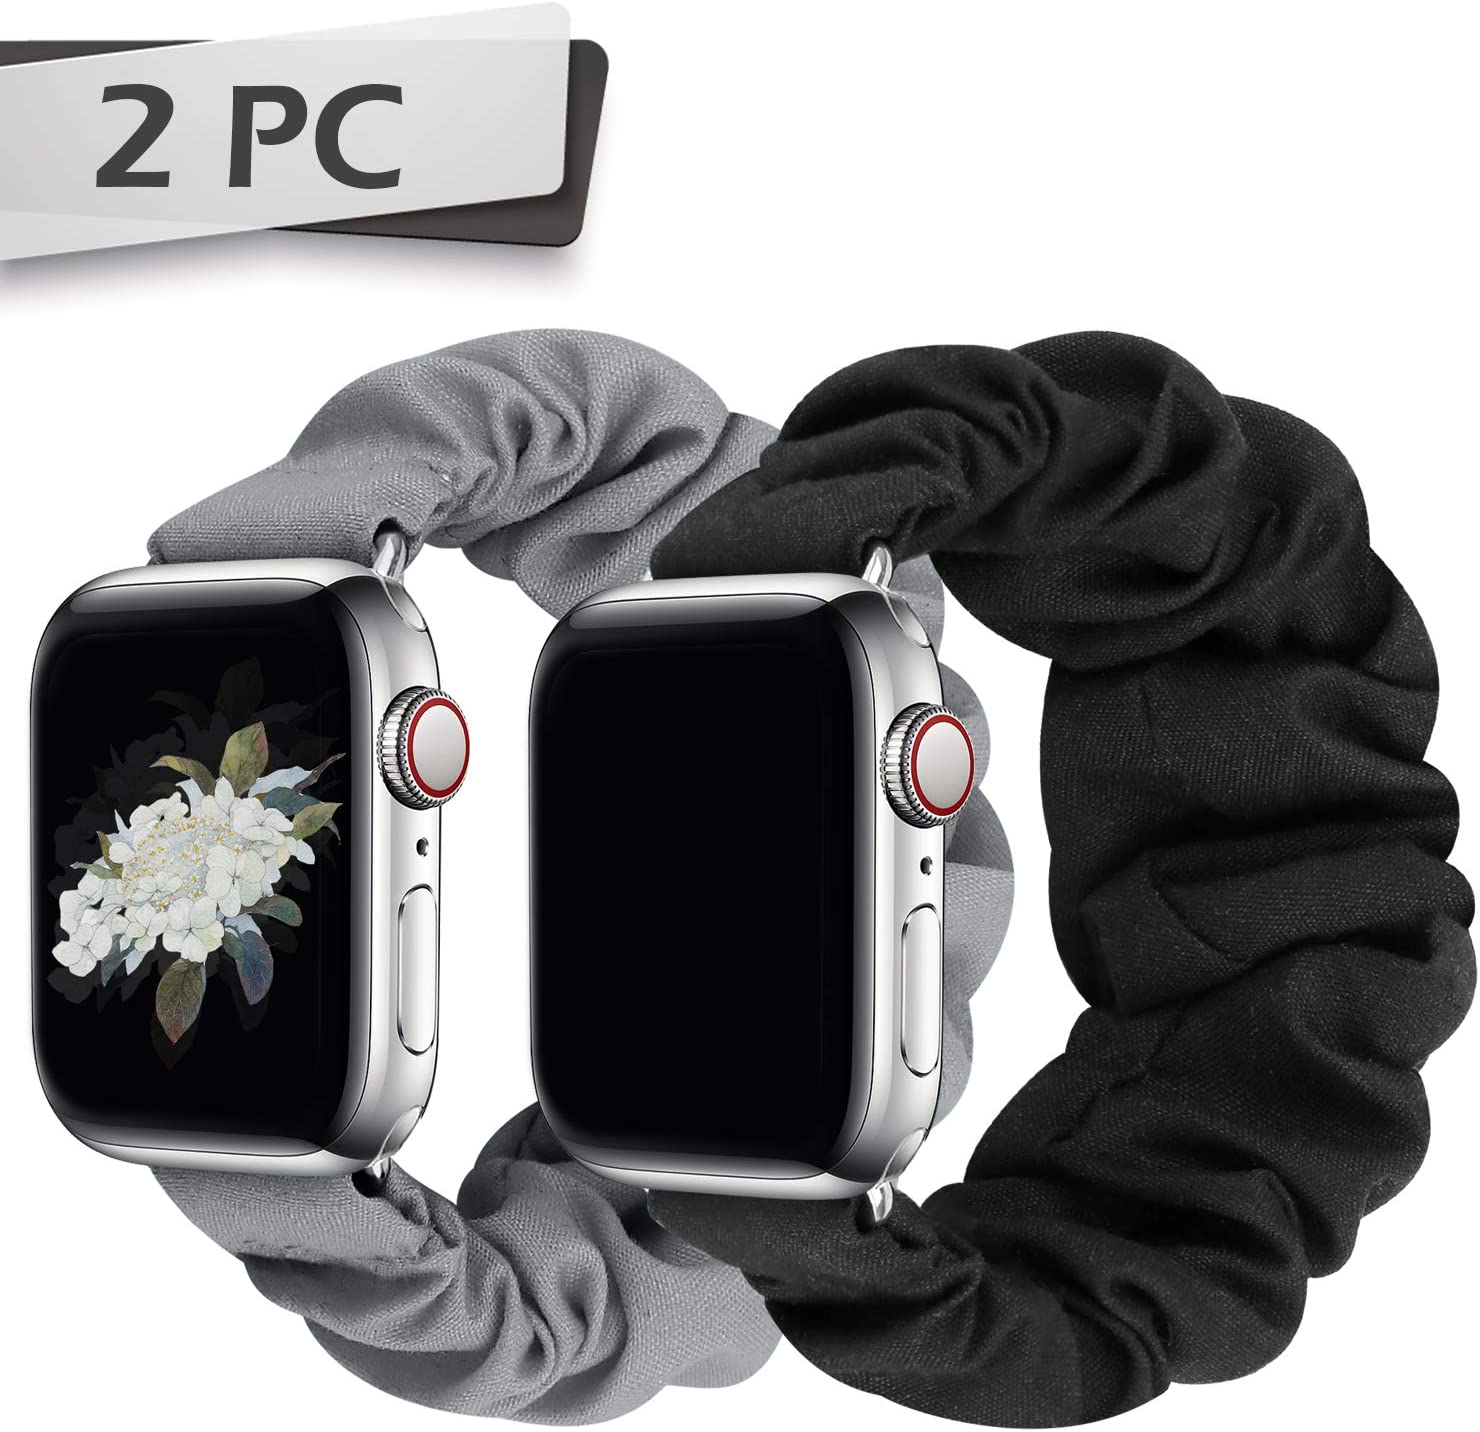 JIELIELE Compatible with Scrunchie Apple Watch Band 38mm 40mm 42mm 44mm, Cute Elastic Wristbands for Women, Stretchy Strap Iwatch Bands for Apple Watch Series SE 6 5 4 3 2 1 (M-38/40 SET-BG)